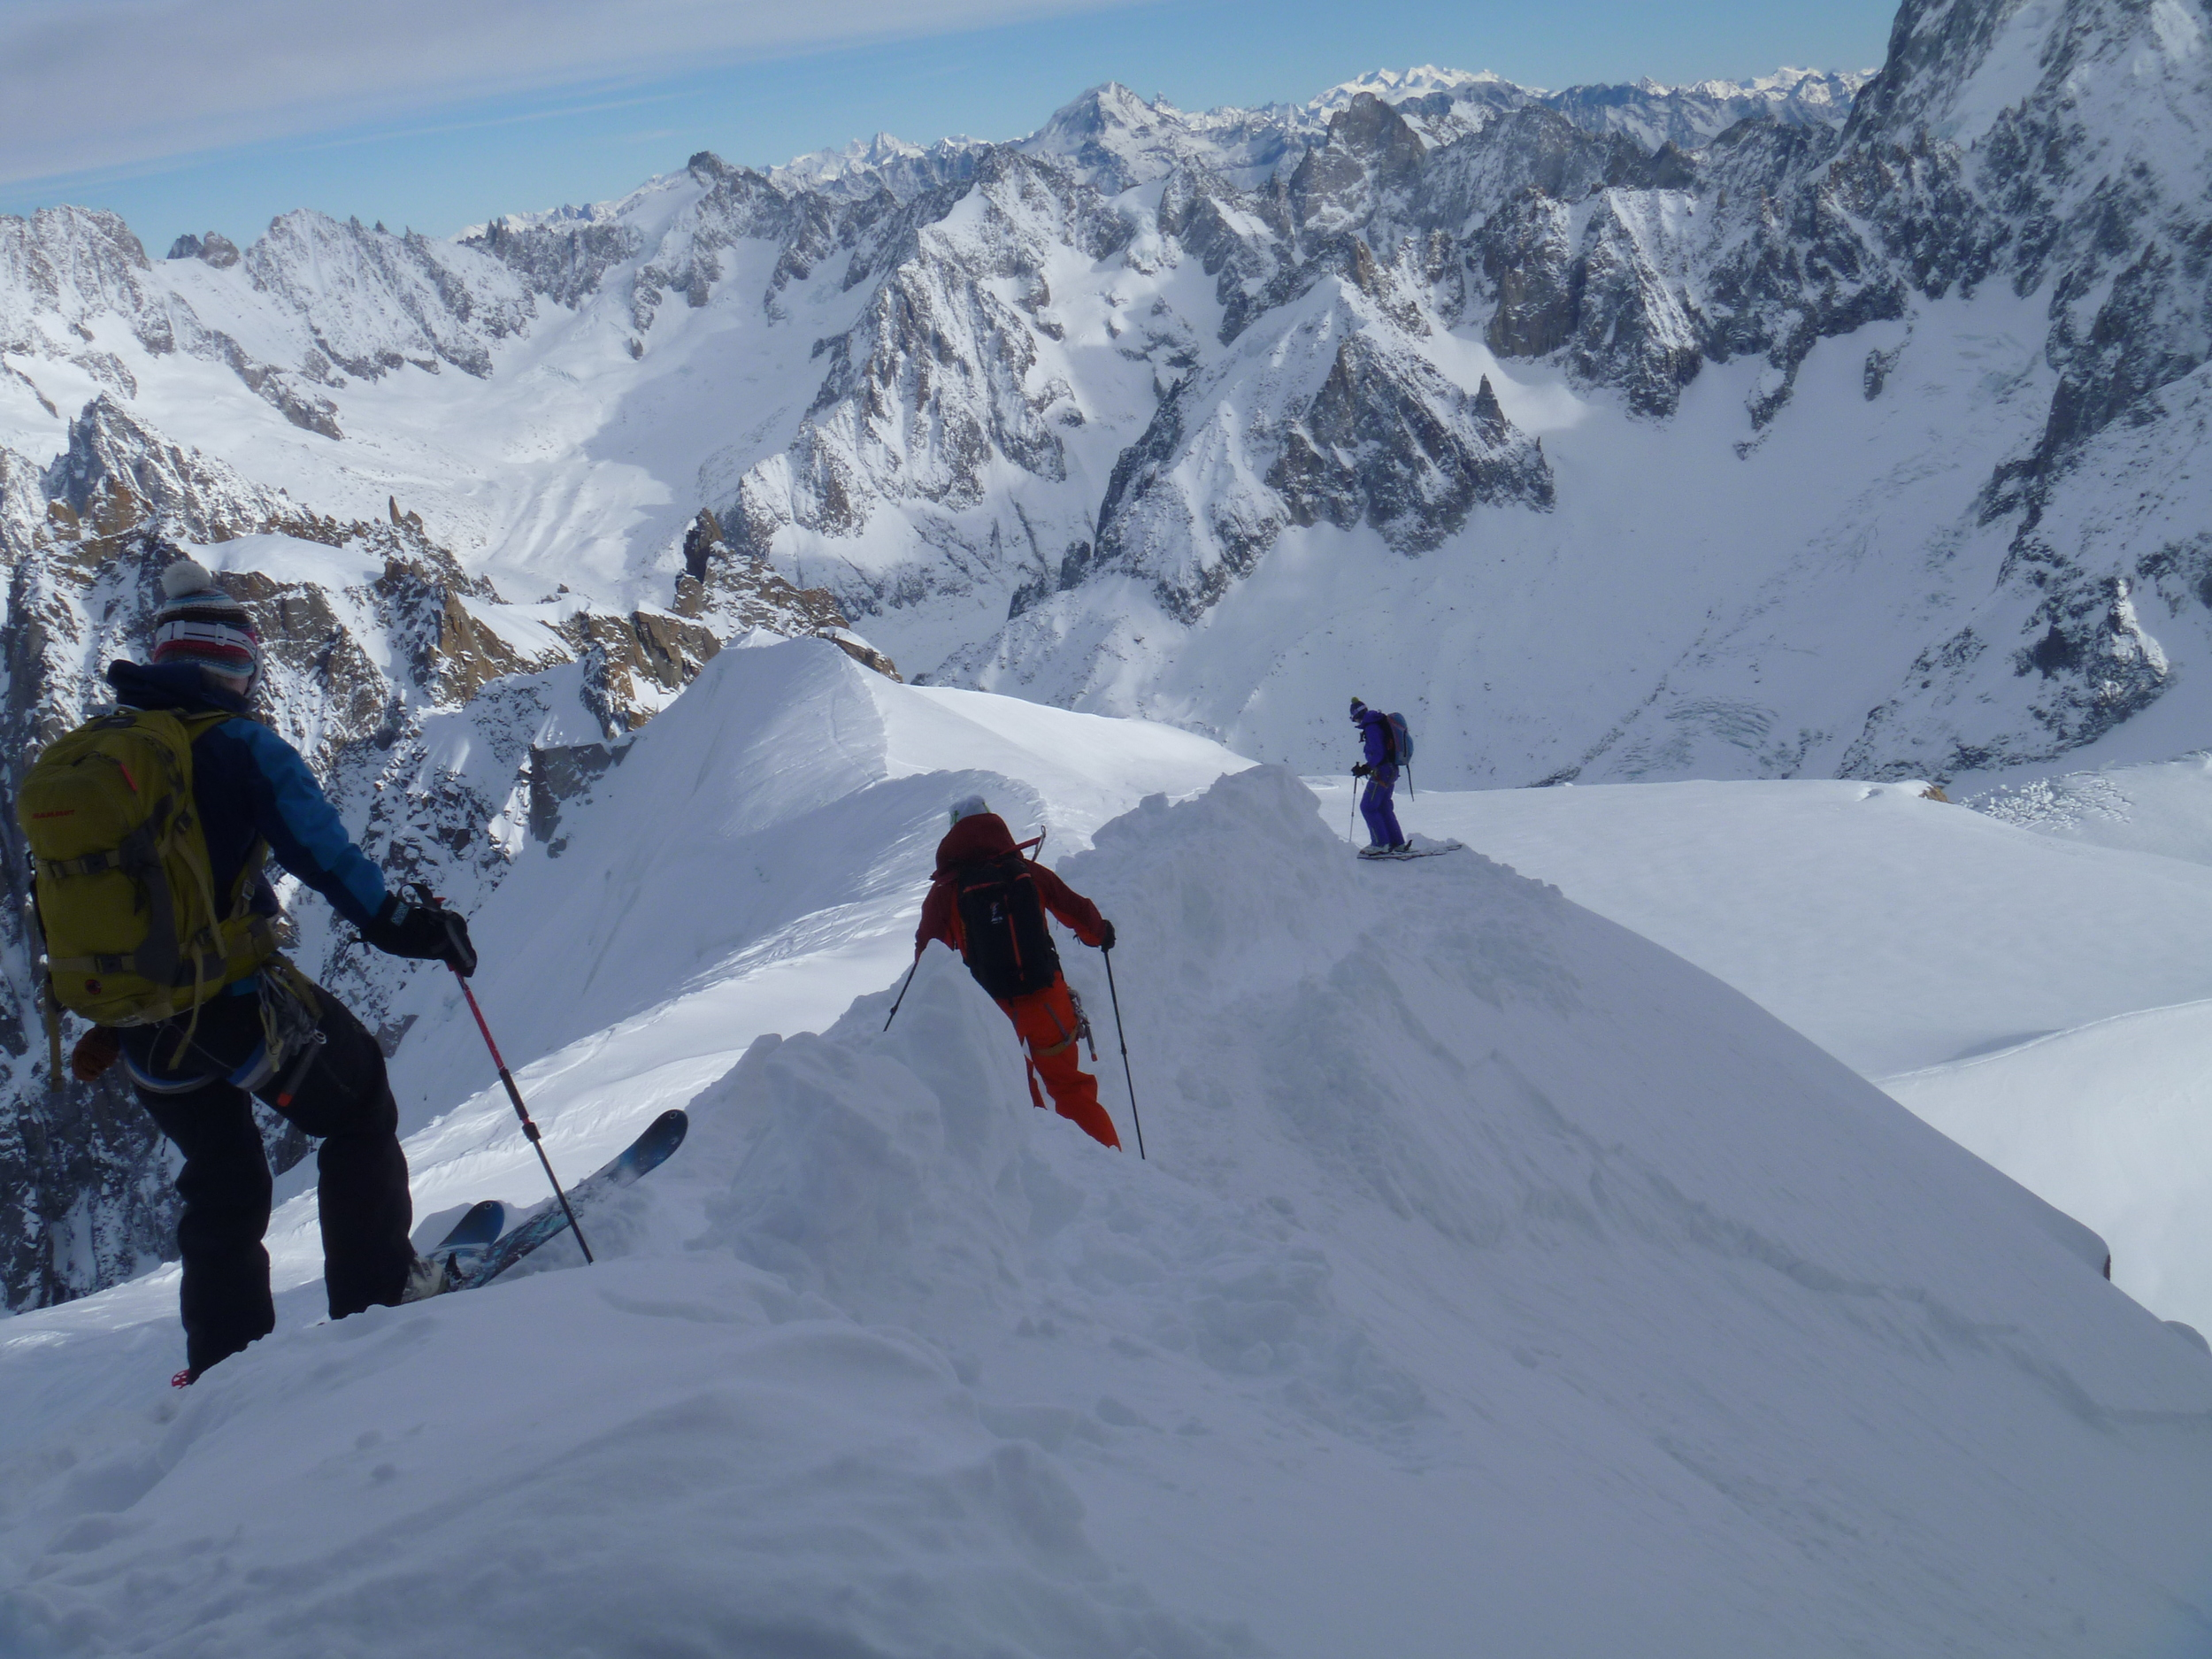 (From left to right) Erin, Miles, and Liz Smart skiing the pre-equipped arête off the Aiguille du Midi in December.